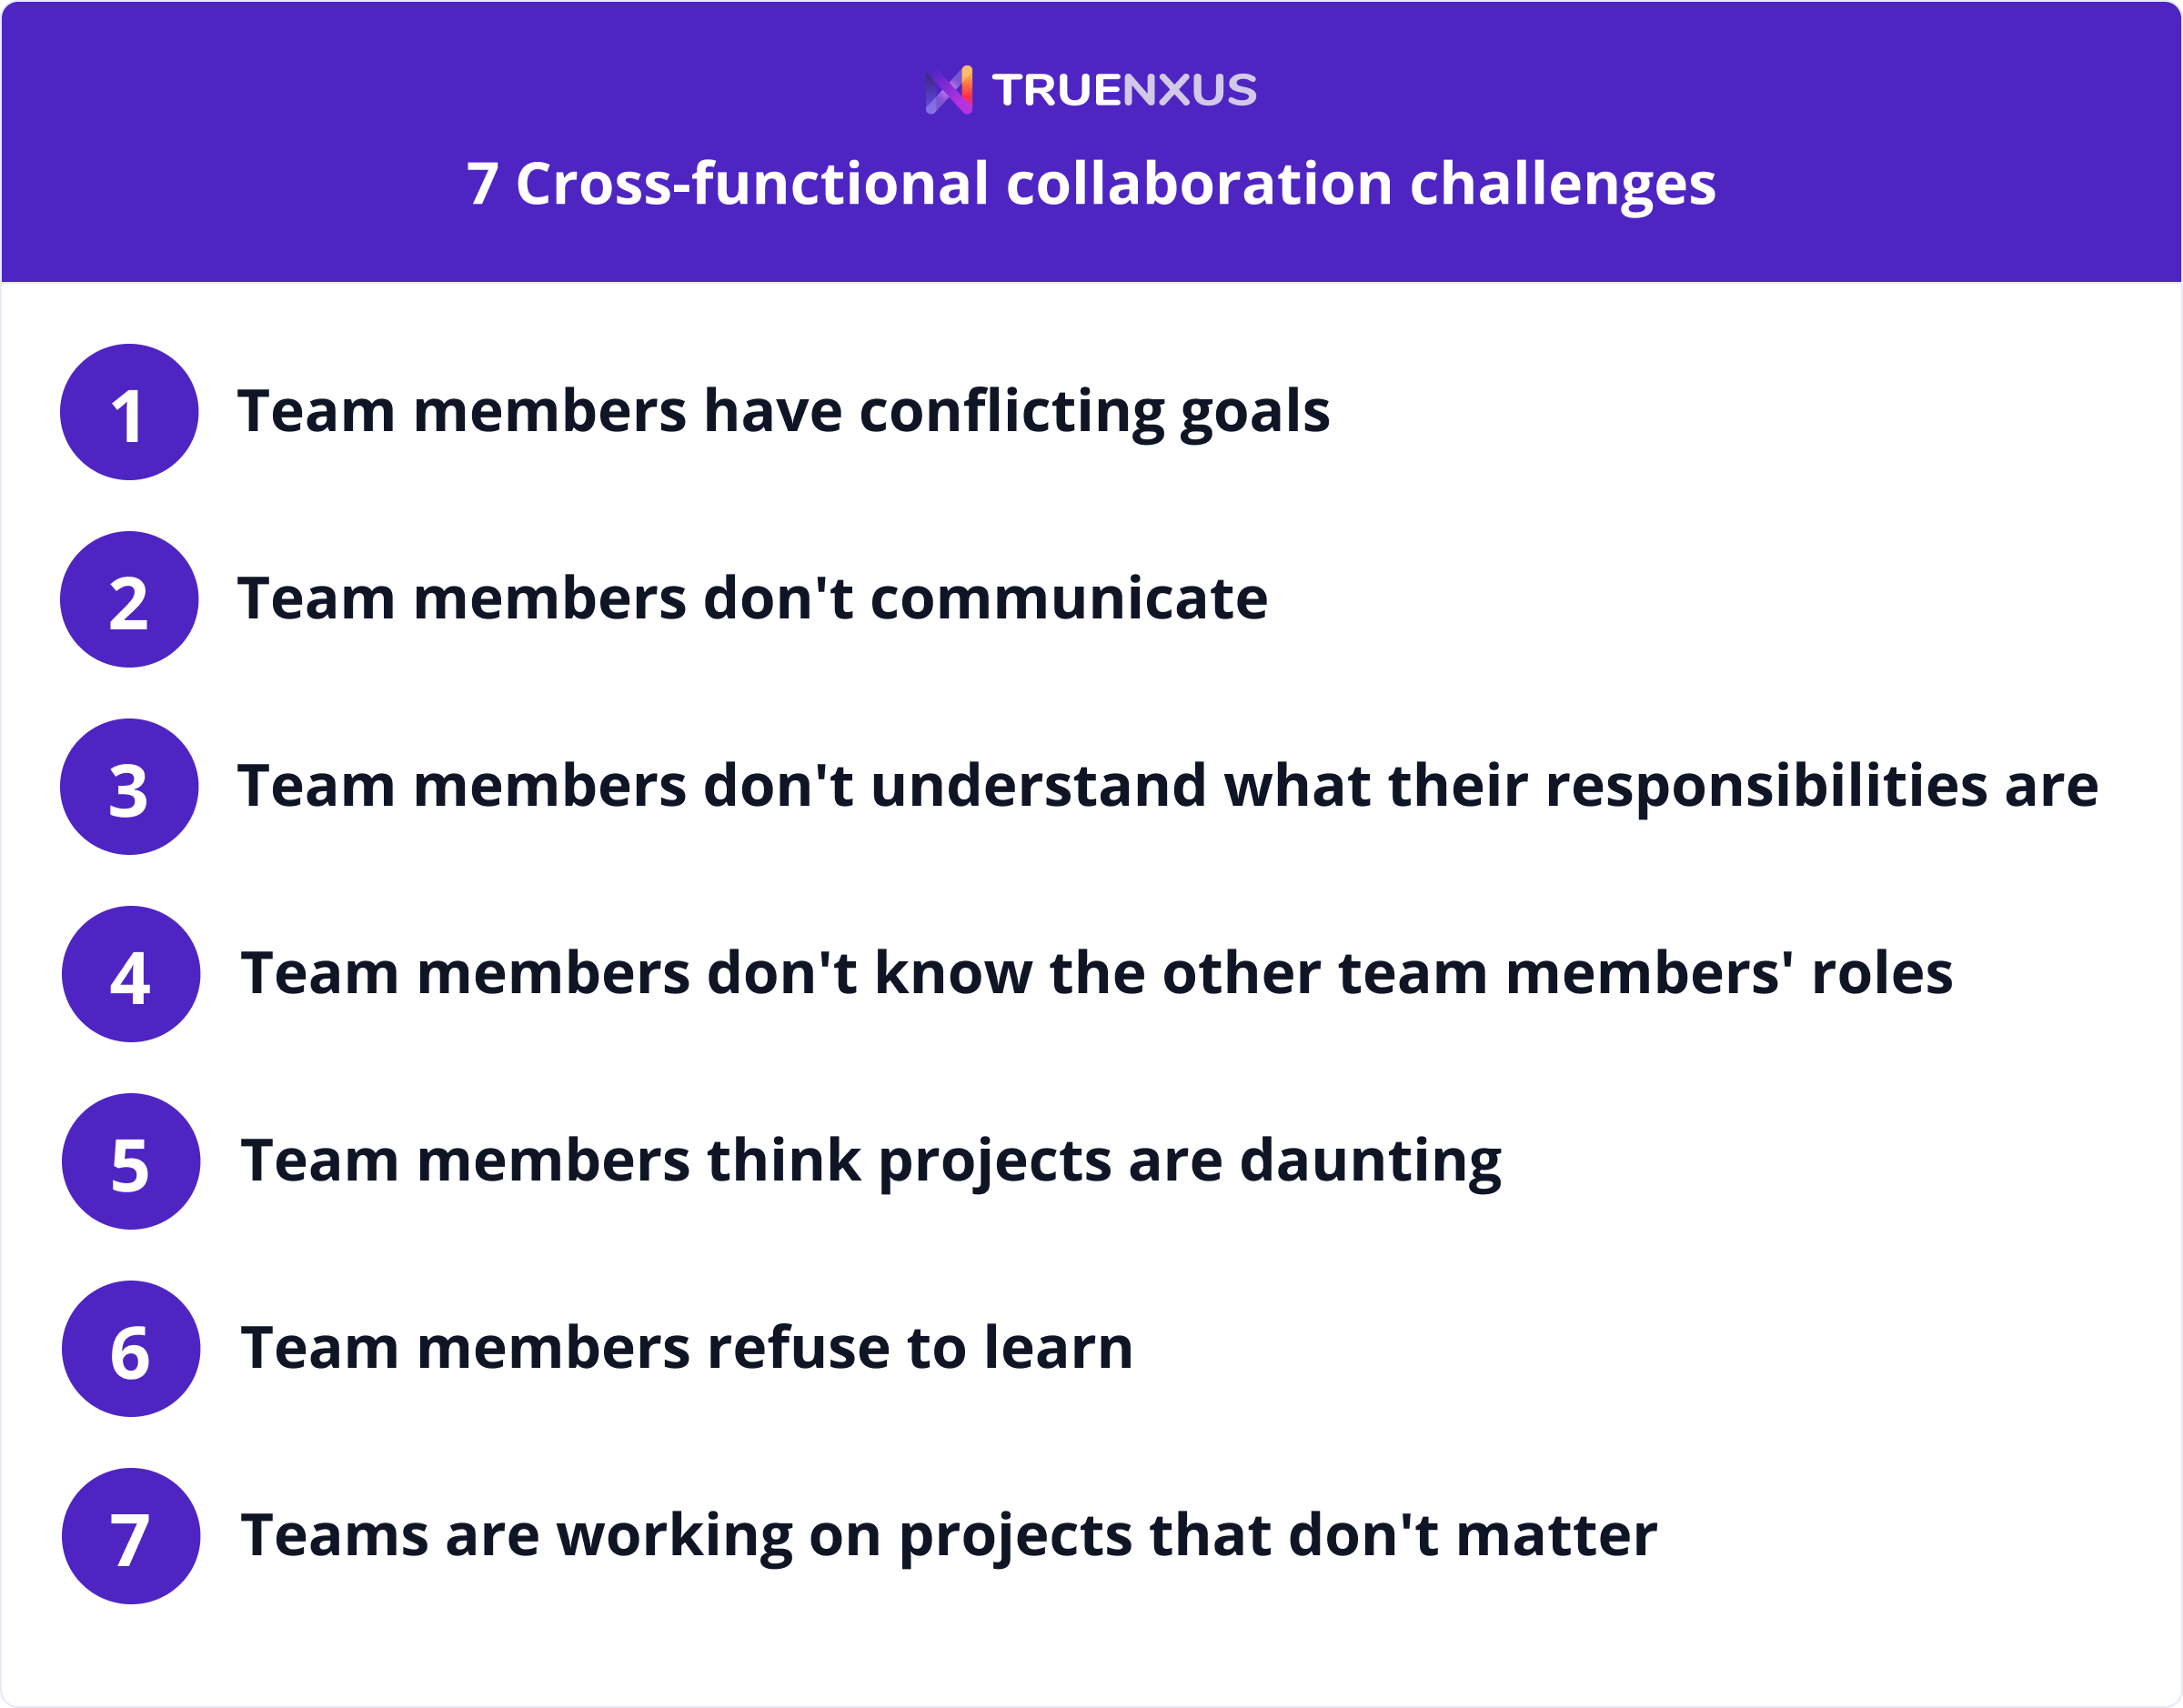 Cross-functional collaboration challenges